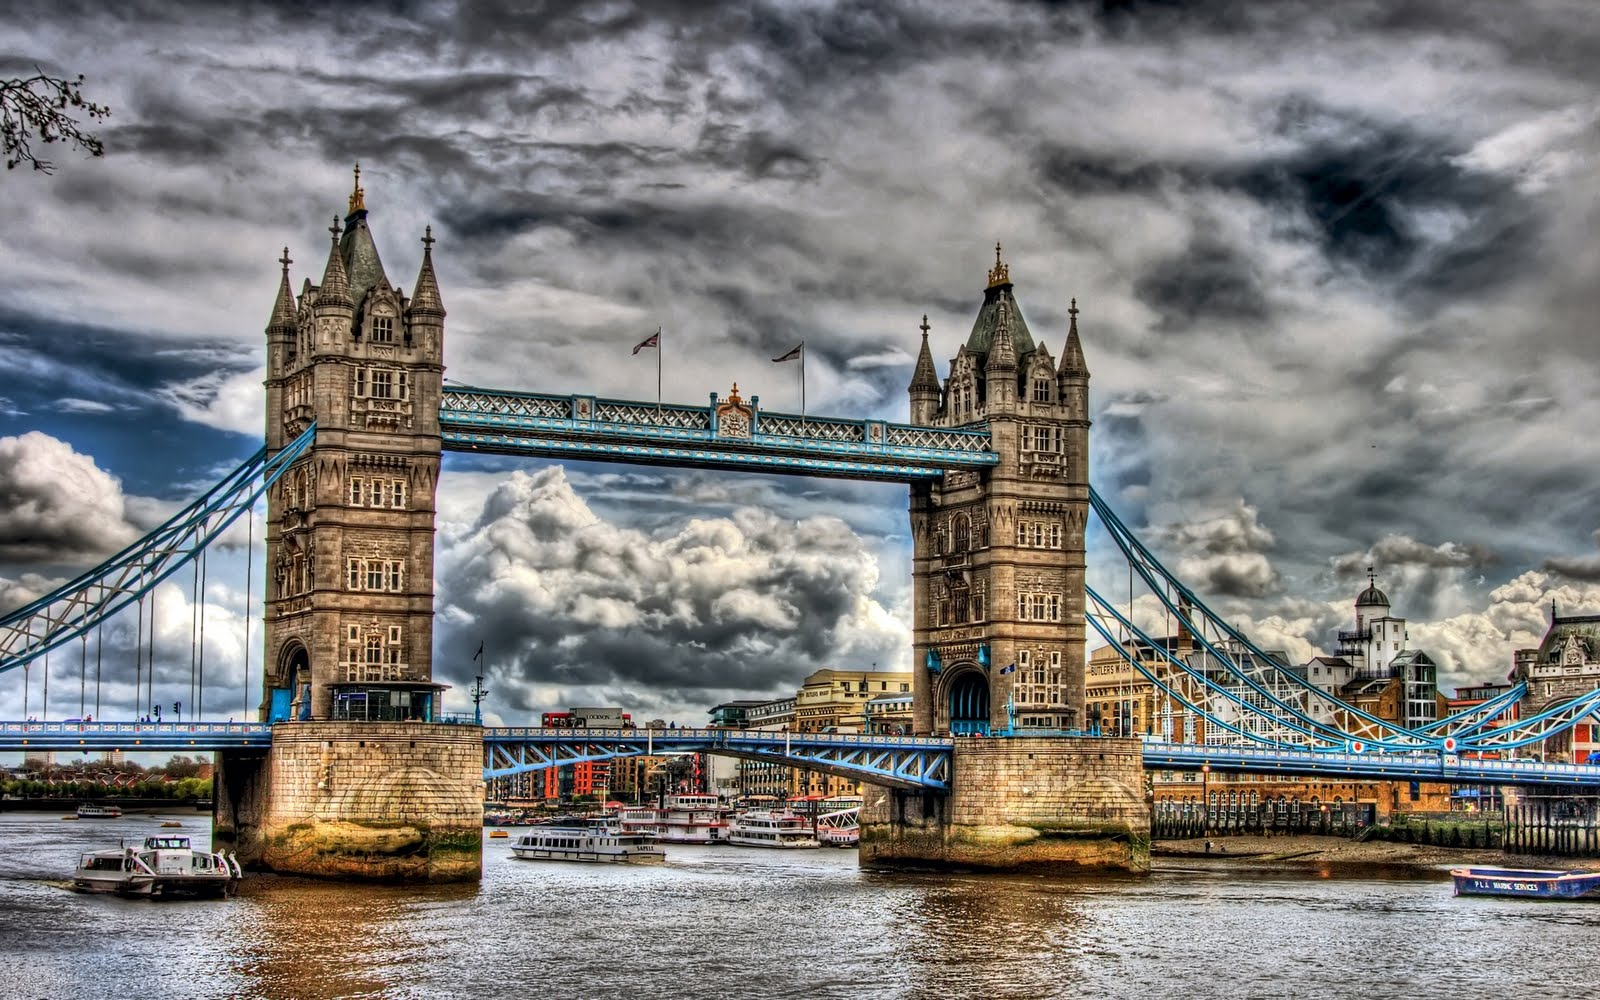 Puente de la torre - Tower Bridge HDR (1920x1200px)